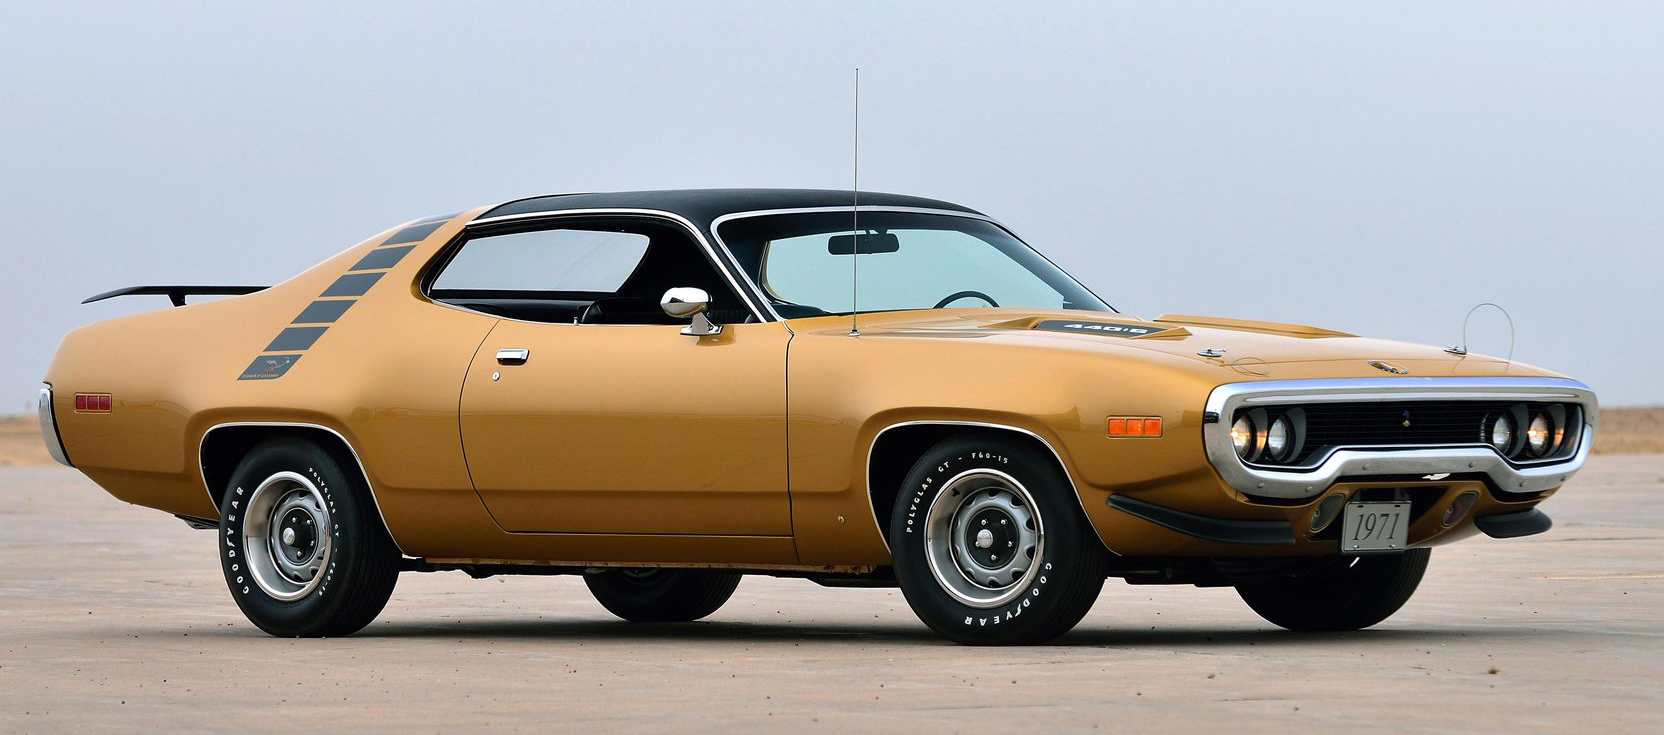 9. Plymouth 'Cuda Roadrunner